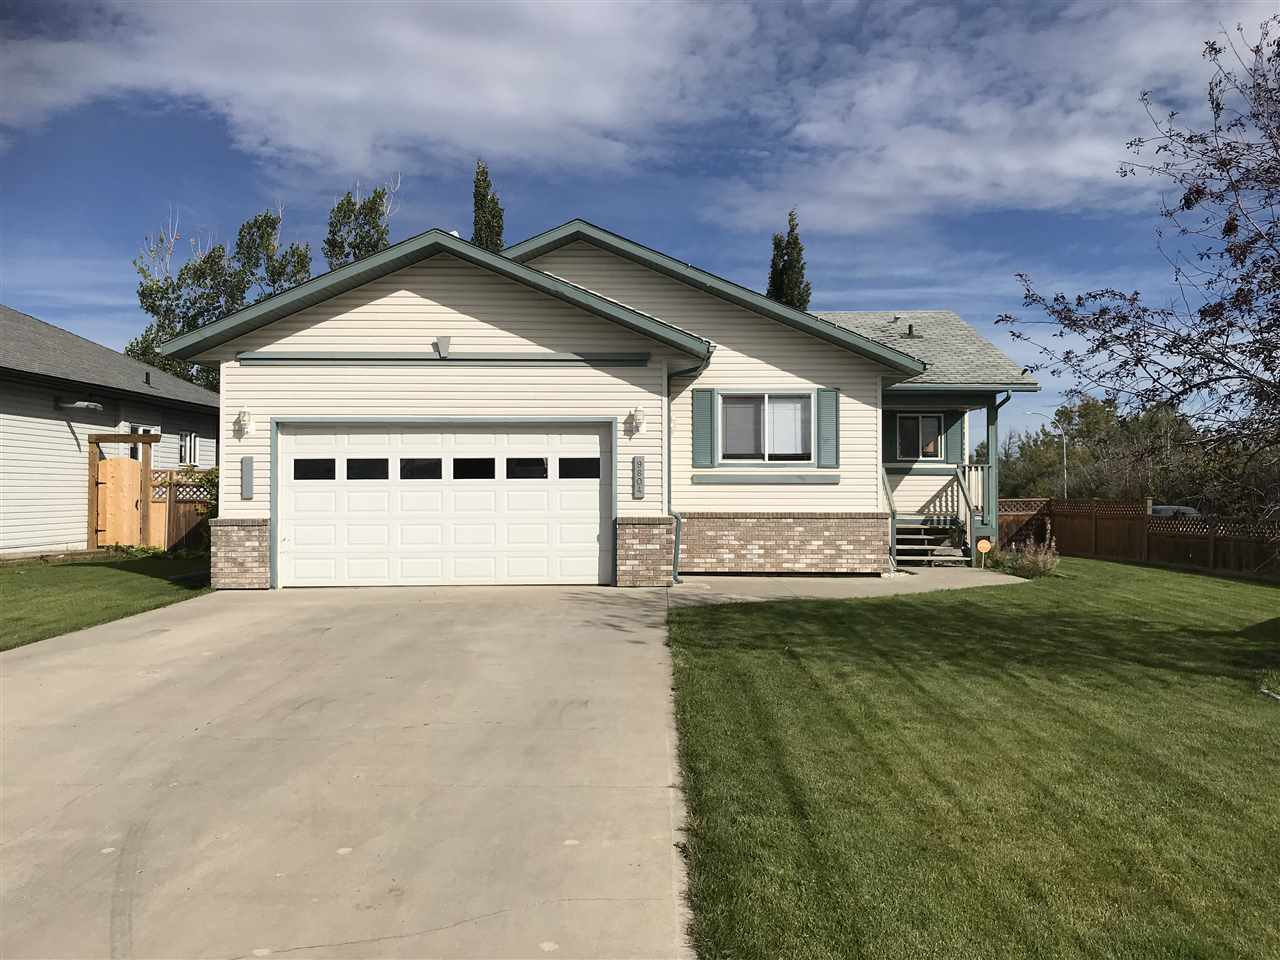 Main Photo: 9804 114A Avenue in Fort St. John: Fort St. John - City NE House for sale (Fort St. John (Zone 60))  : MLS®# R2417101